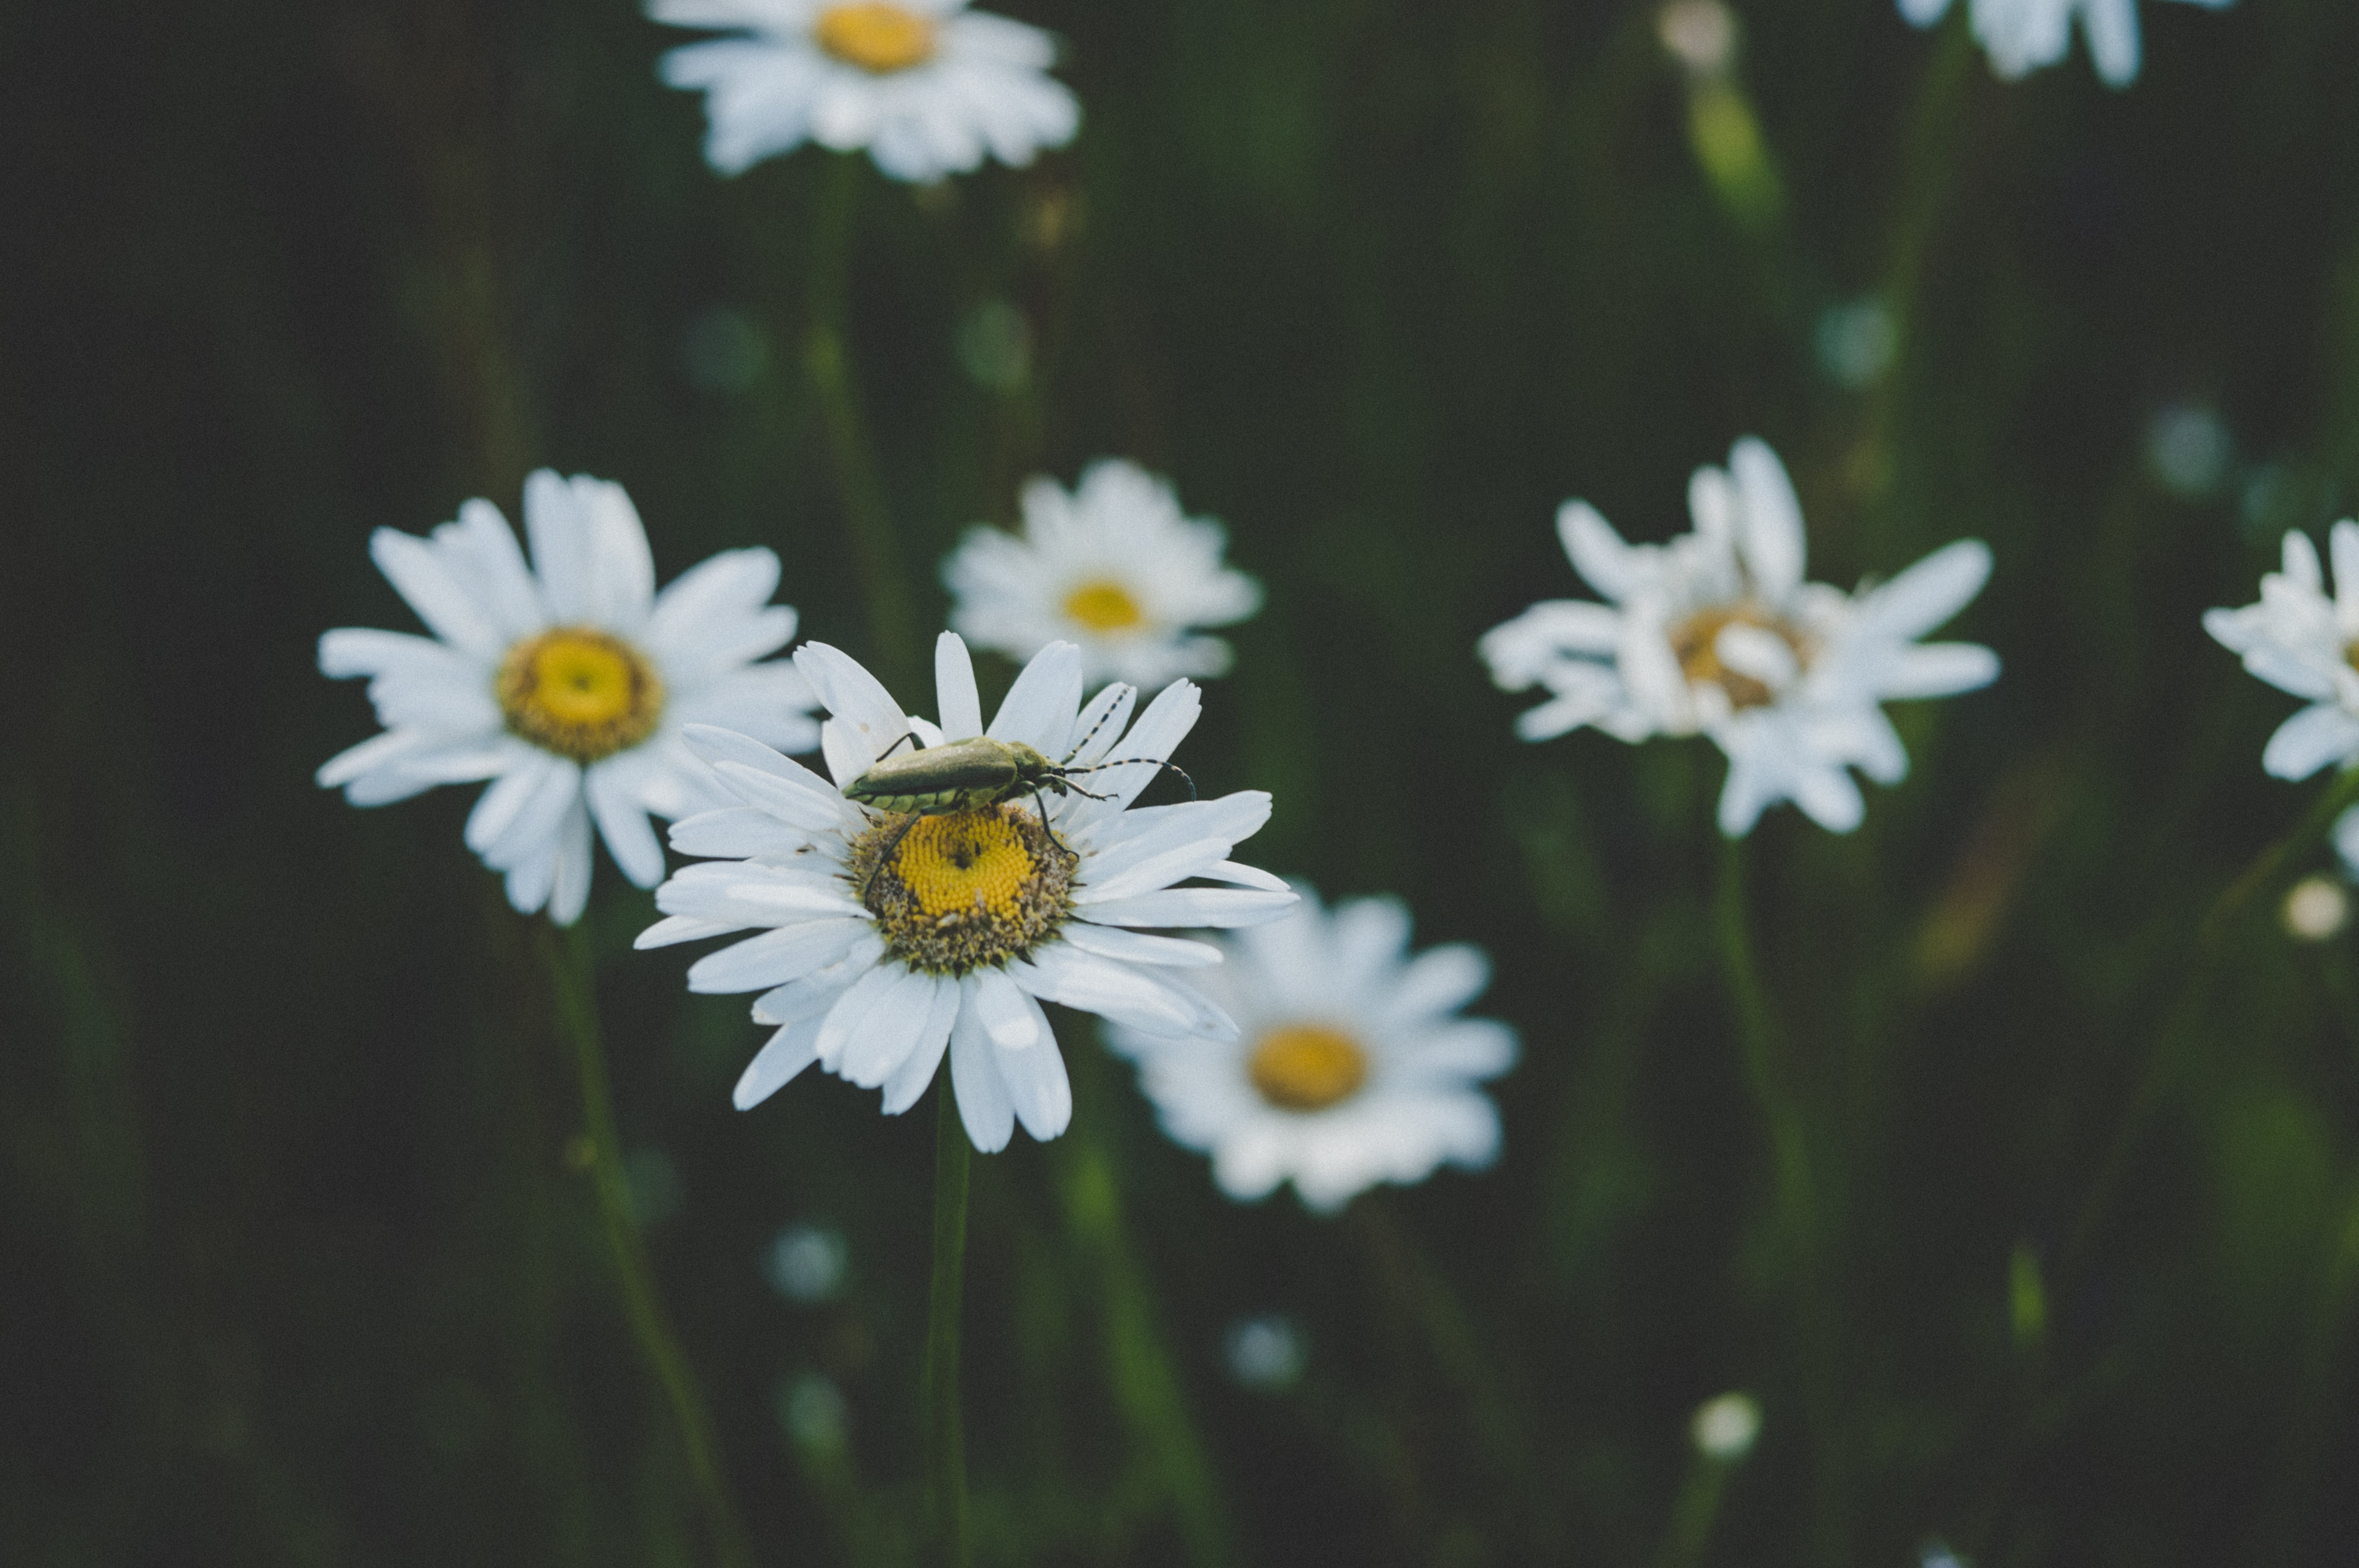 Insect On White Daisy Flower